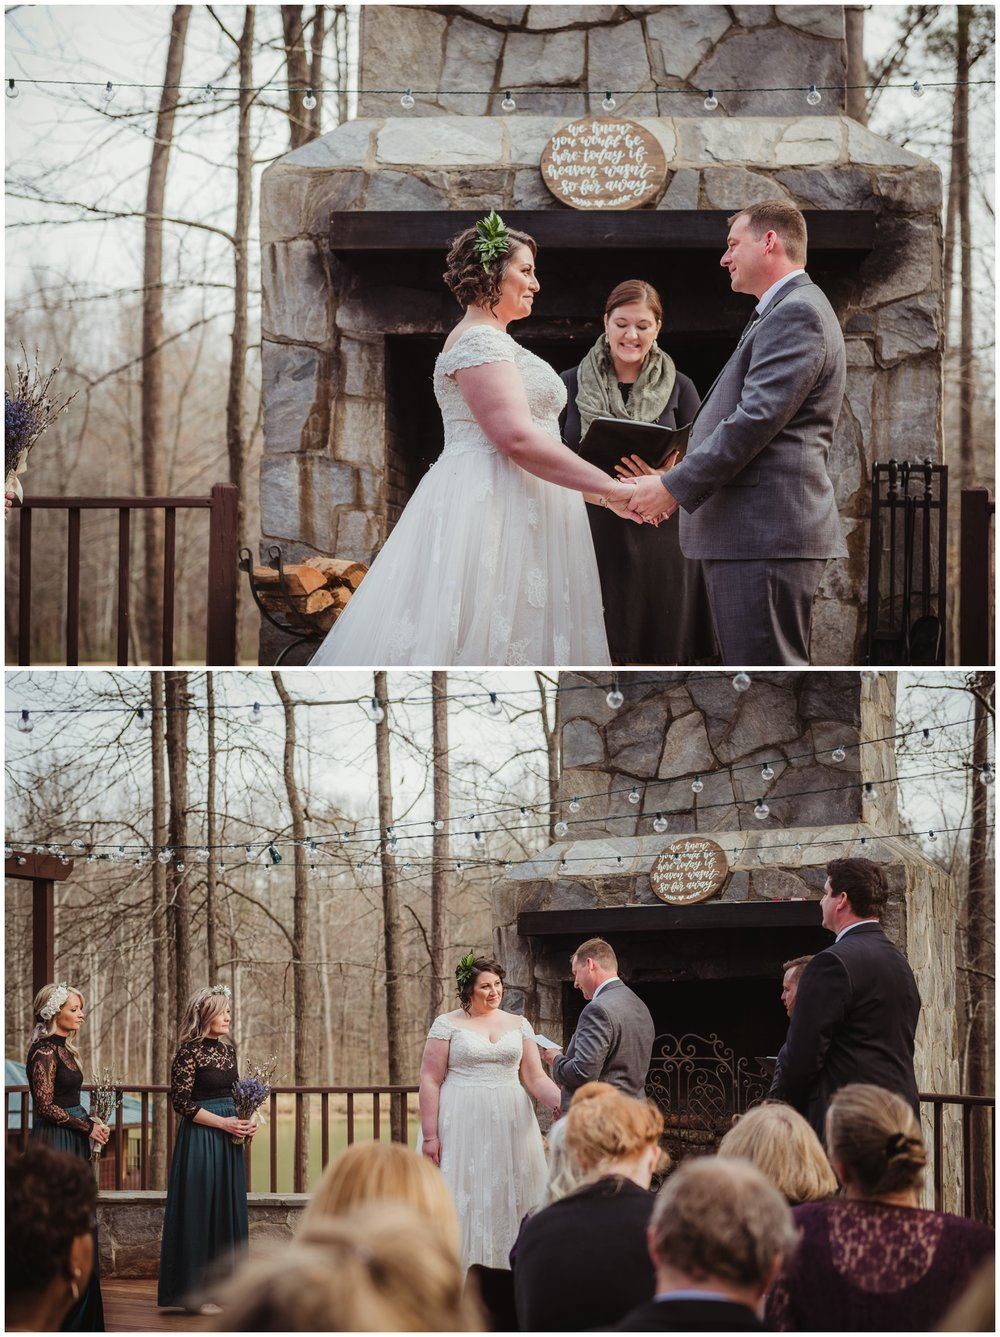 The bride and groom exchange vows on their wedding day at the Barn at Valhalla in Chapel Hill, taken by Rose Trail Images.